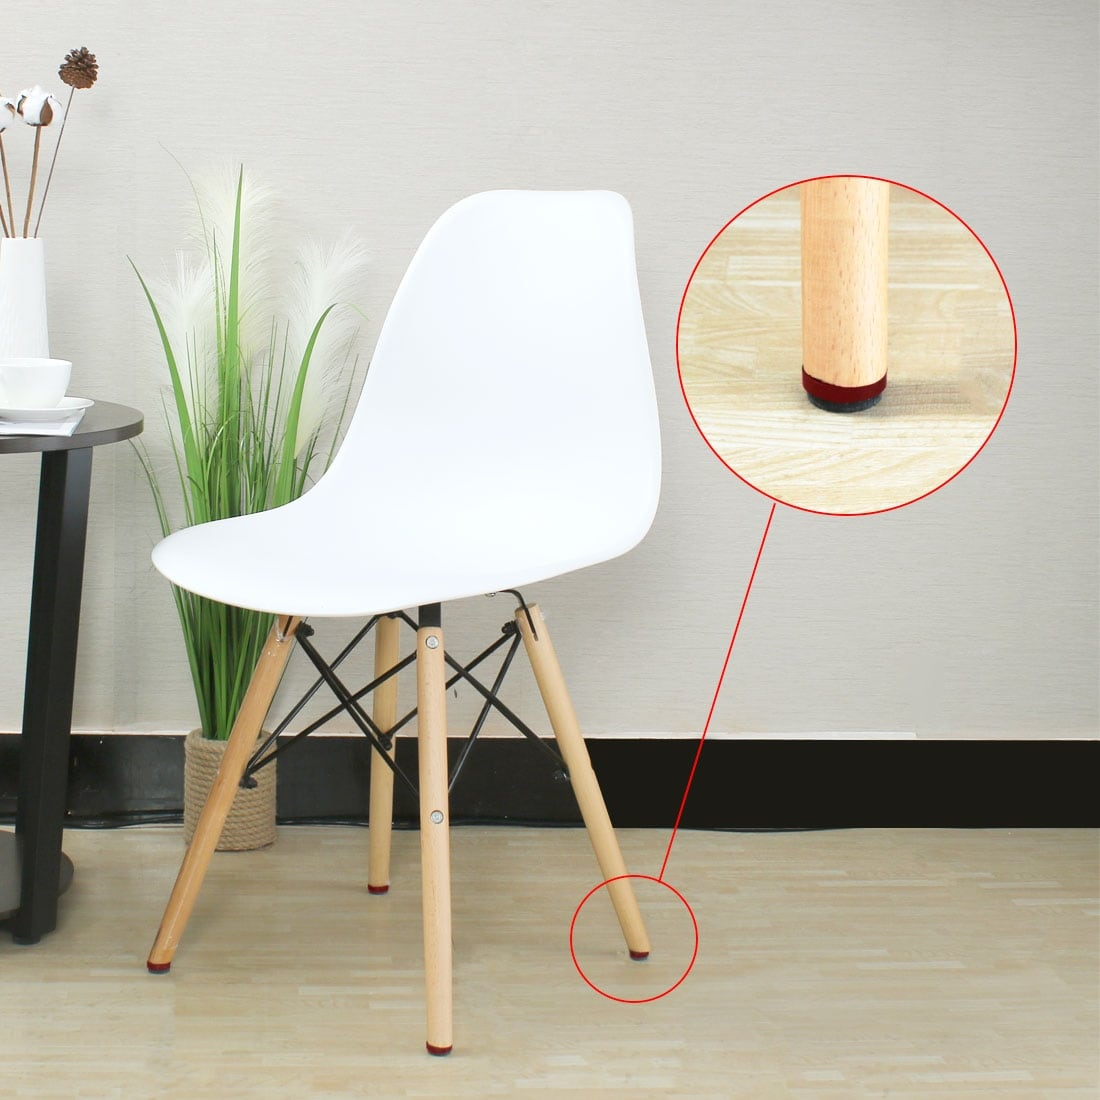 Pro Metal Furniture Glider Chair Glides Felt Pads With Screw 18mm 18 MM